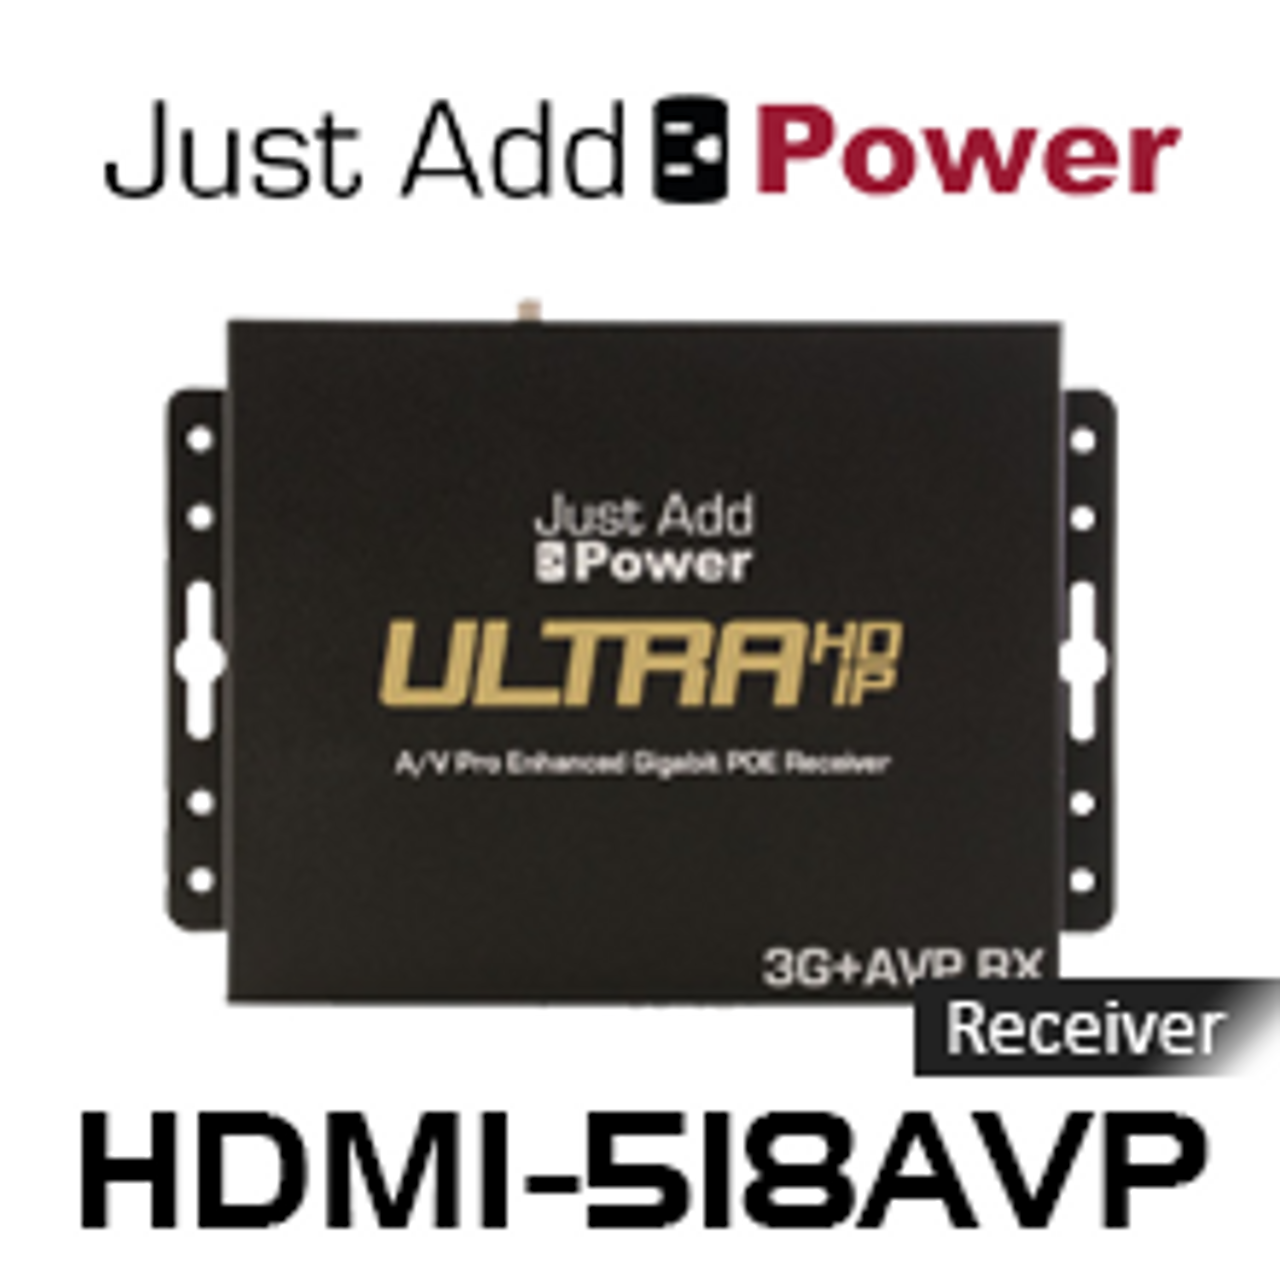 JAP HDMI-518AVP 3G 4K Ultra HD Over IP AVPro Scaler Receiver